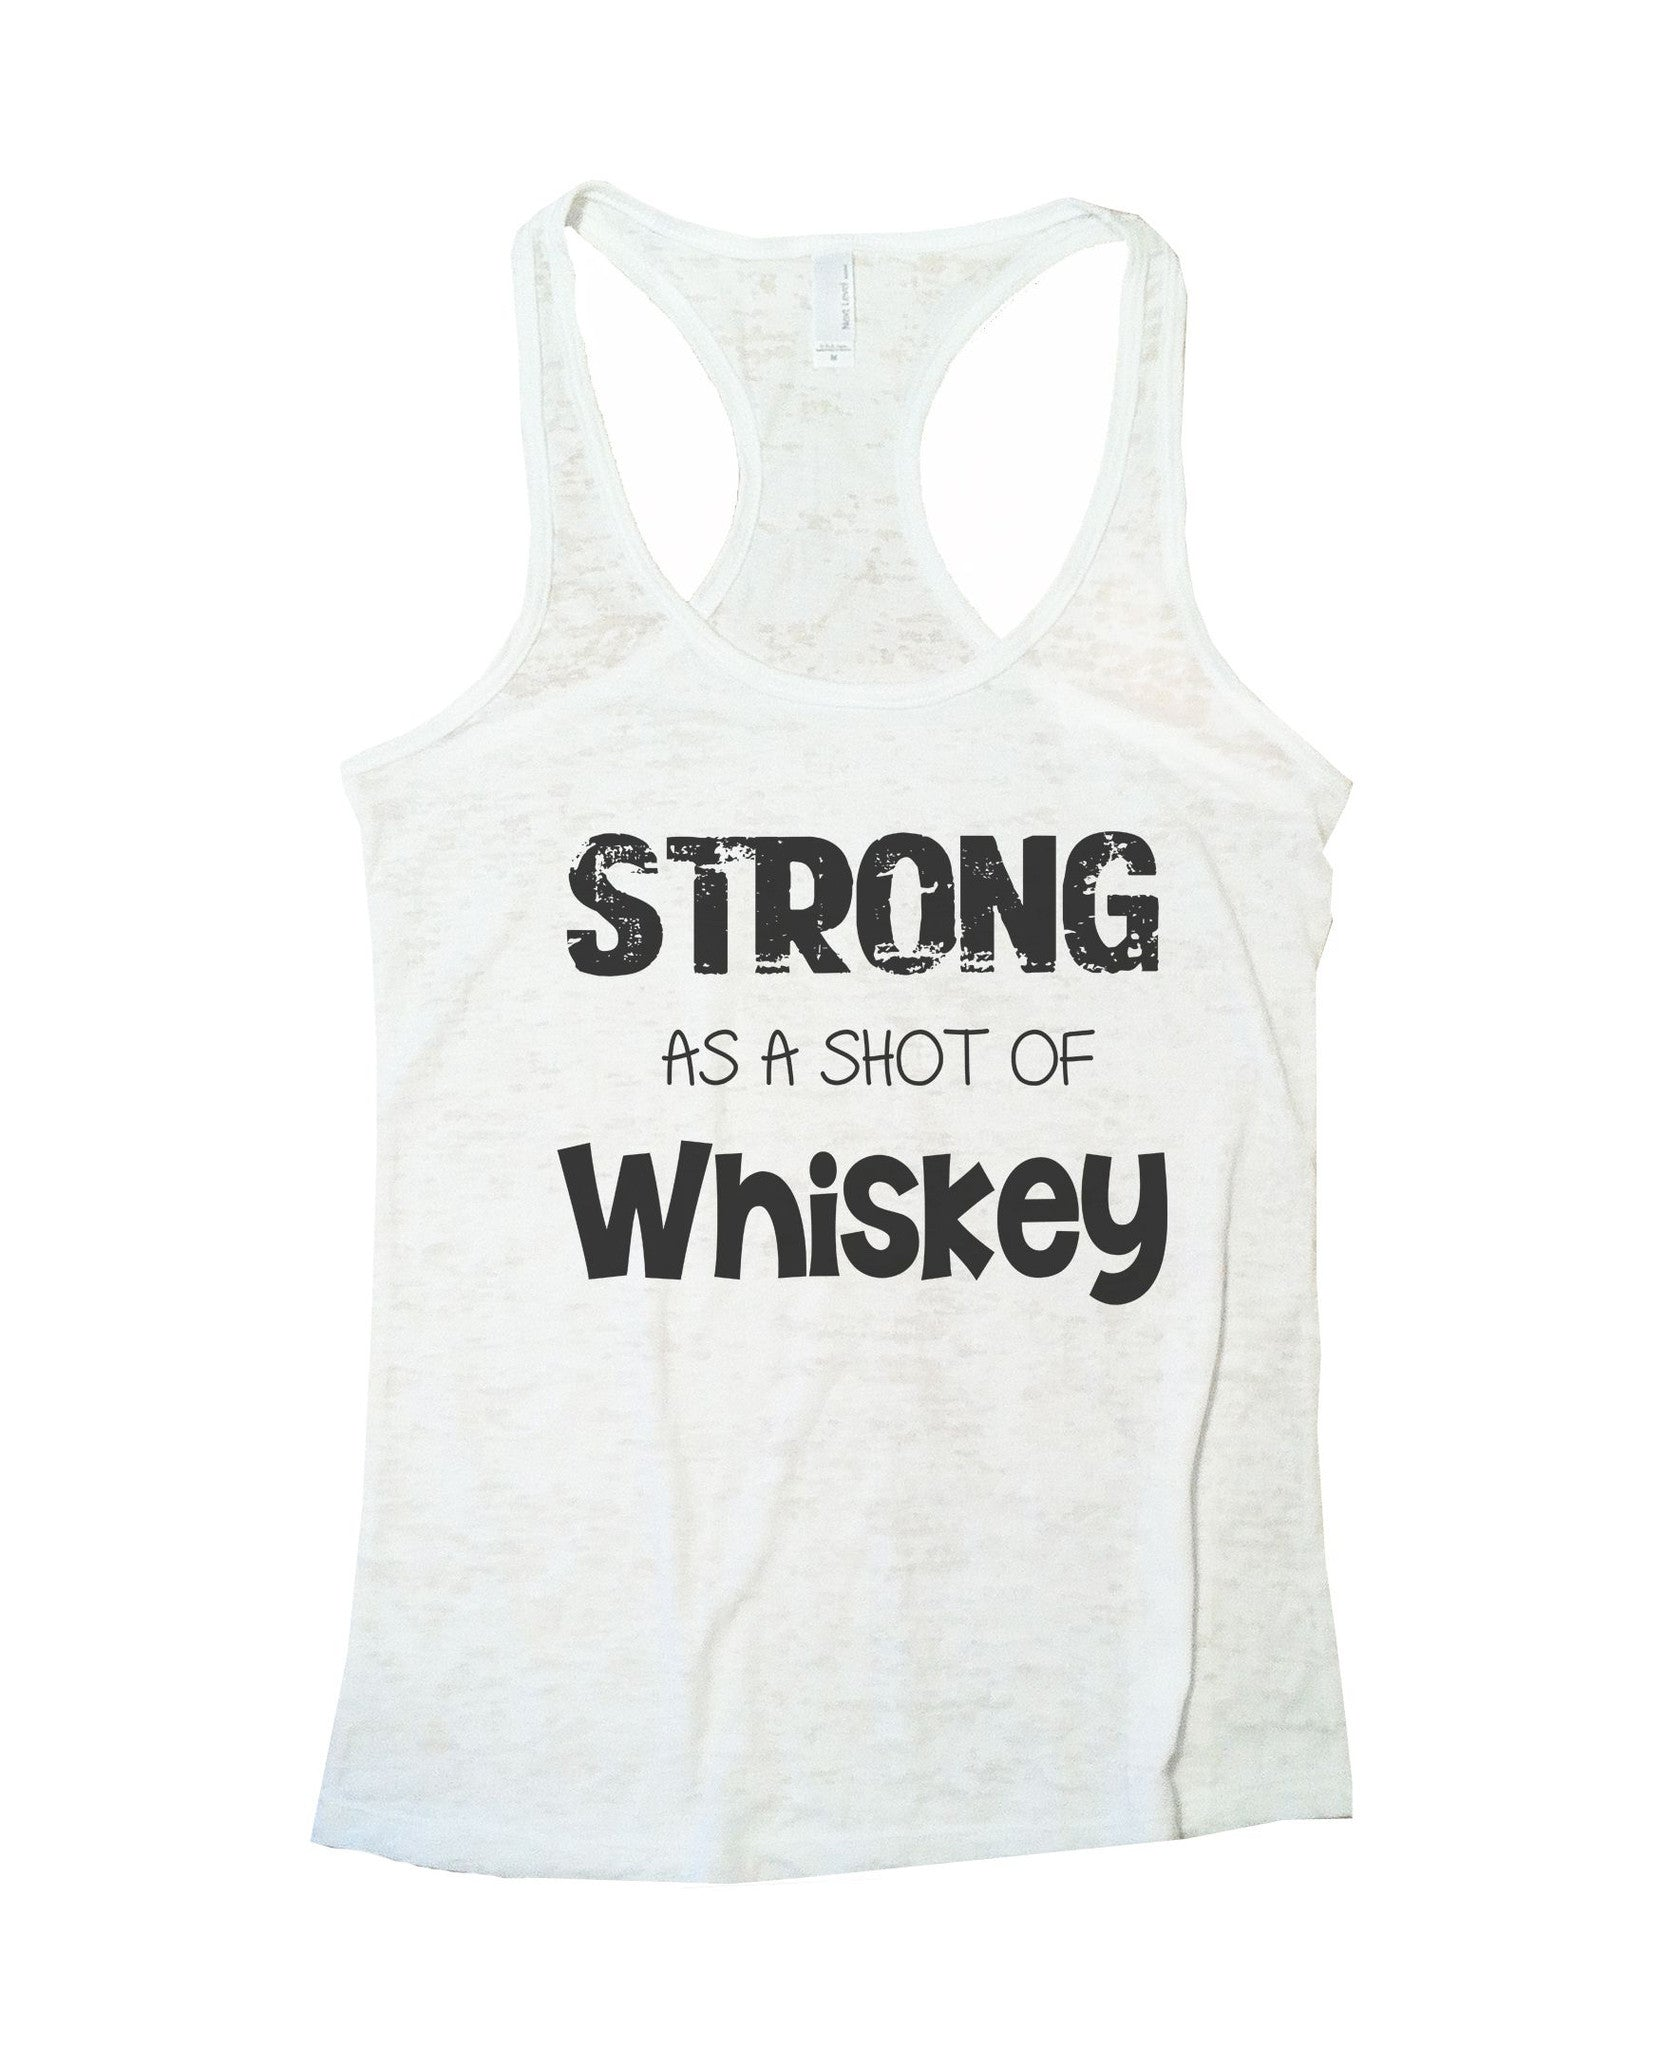 Strong As A Shot Of Whiskey Burnout Tank Top By BurnoutTankTops.com - 717 - Funny Shirts Tank Tops Burnouts and Triblends  - 5